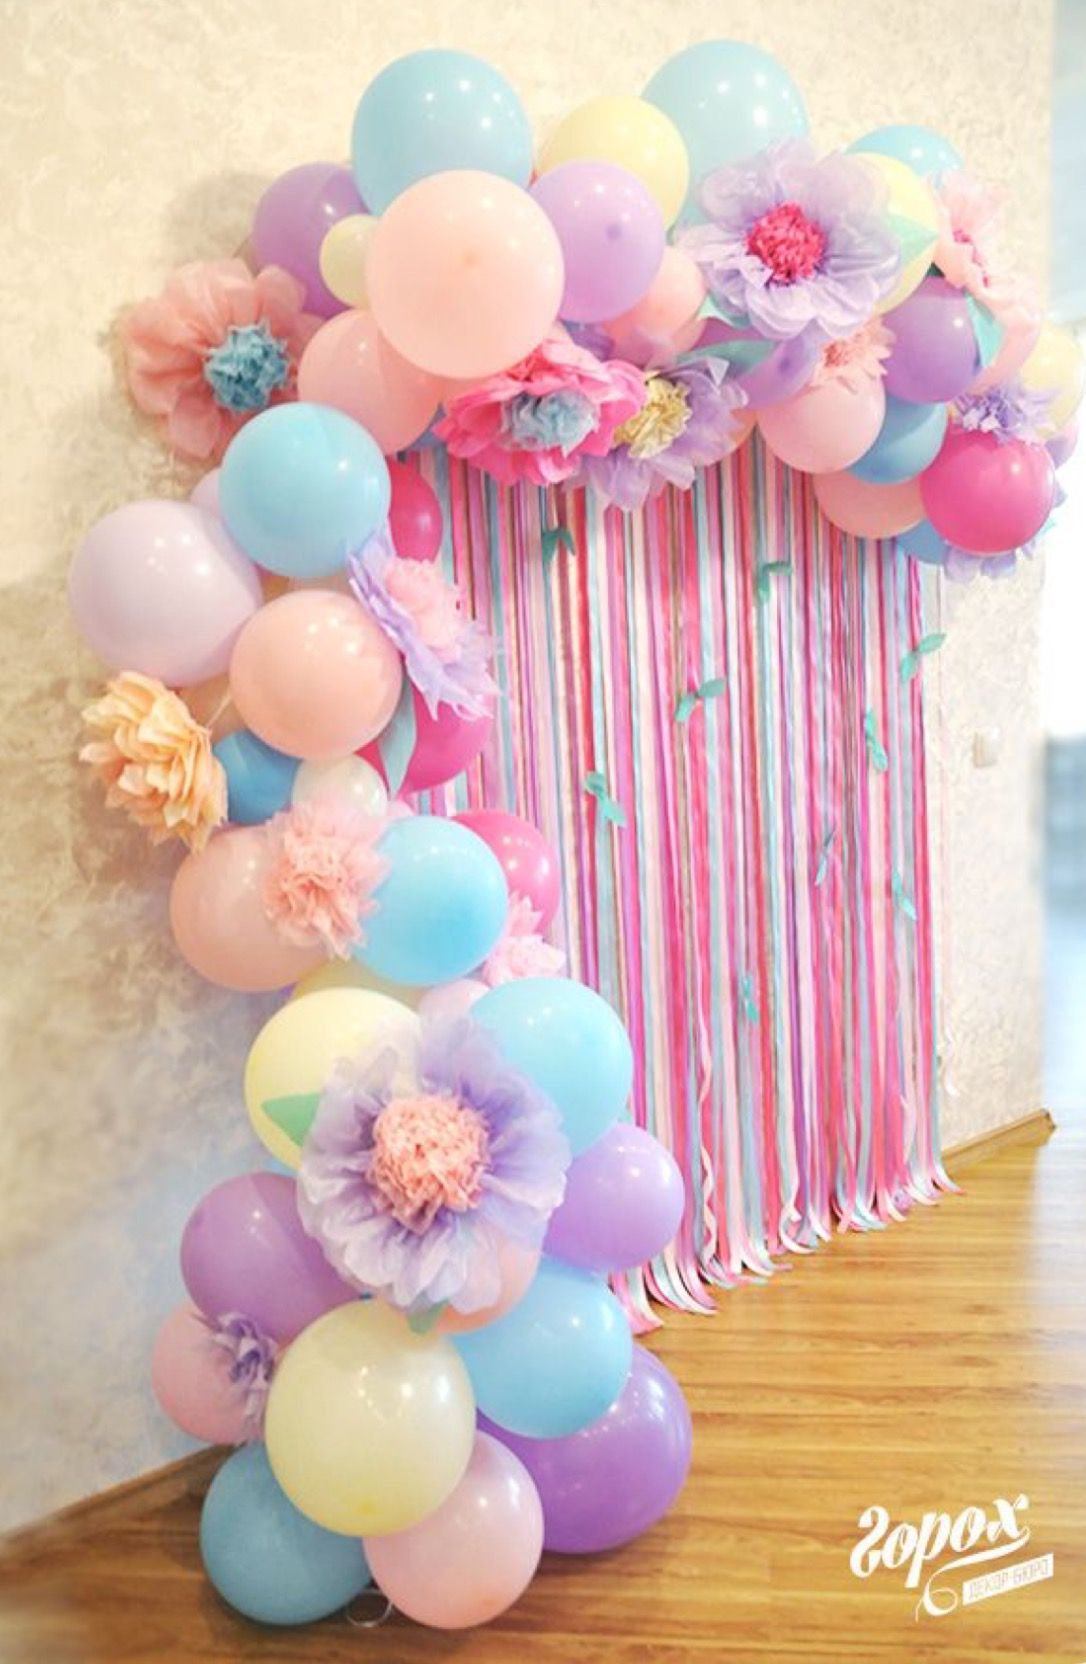 Pin by jocelyn ruiz on fondos para selfie encortinados for Baby girl birthday decoration pictures